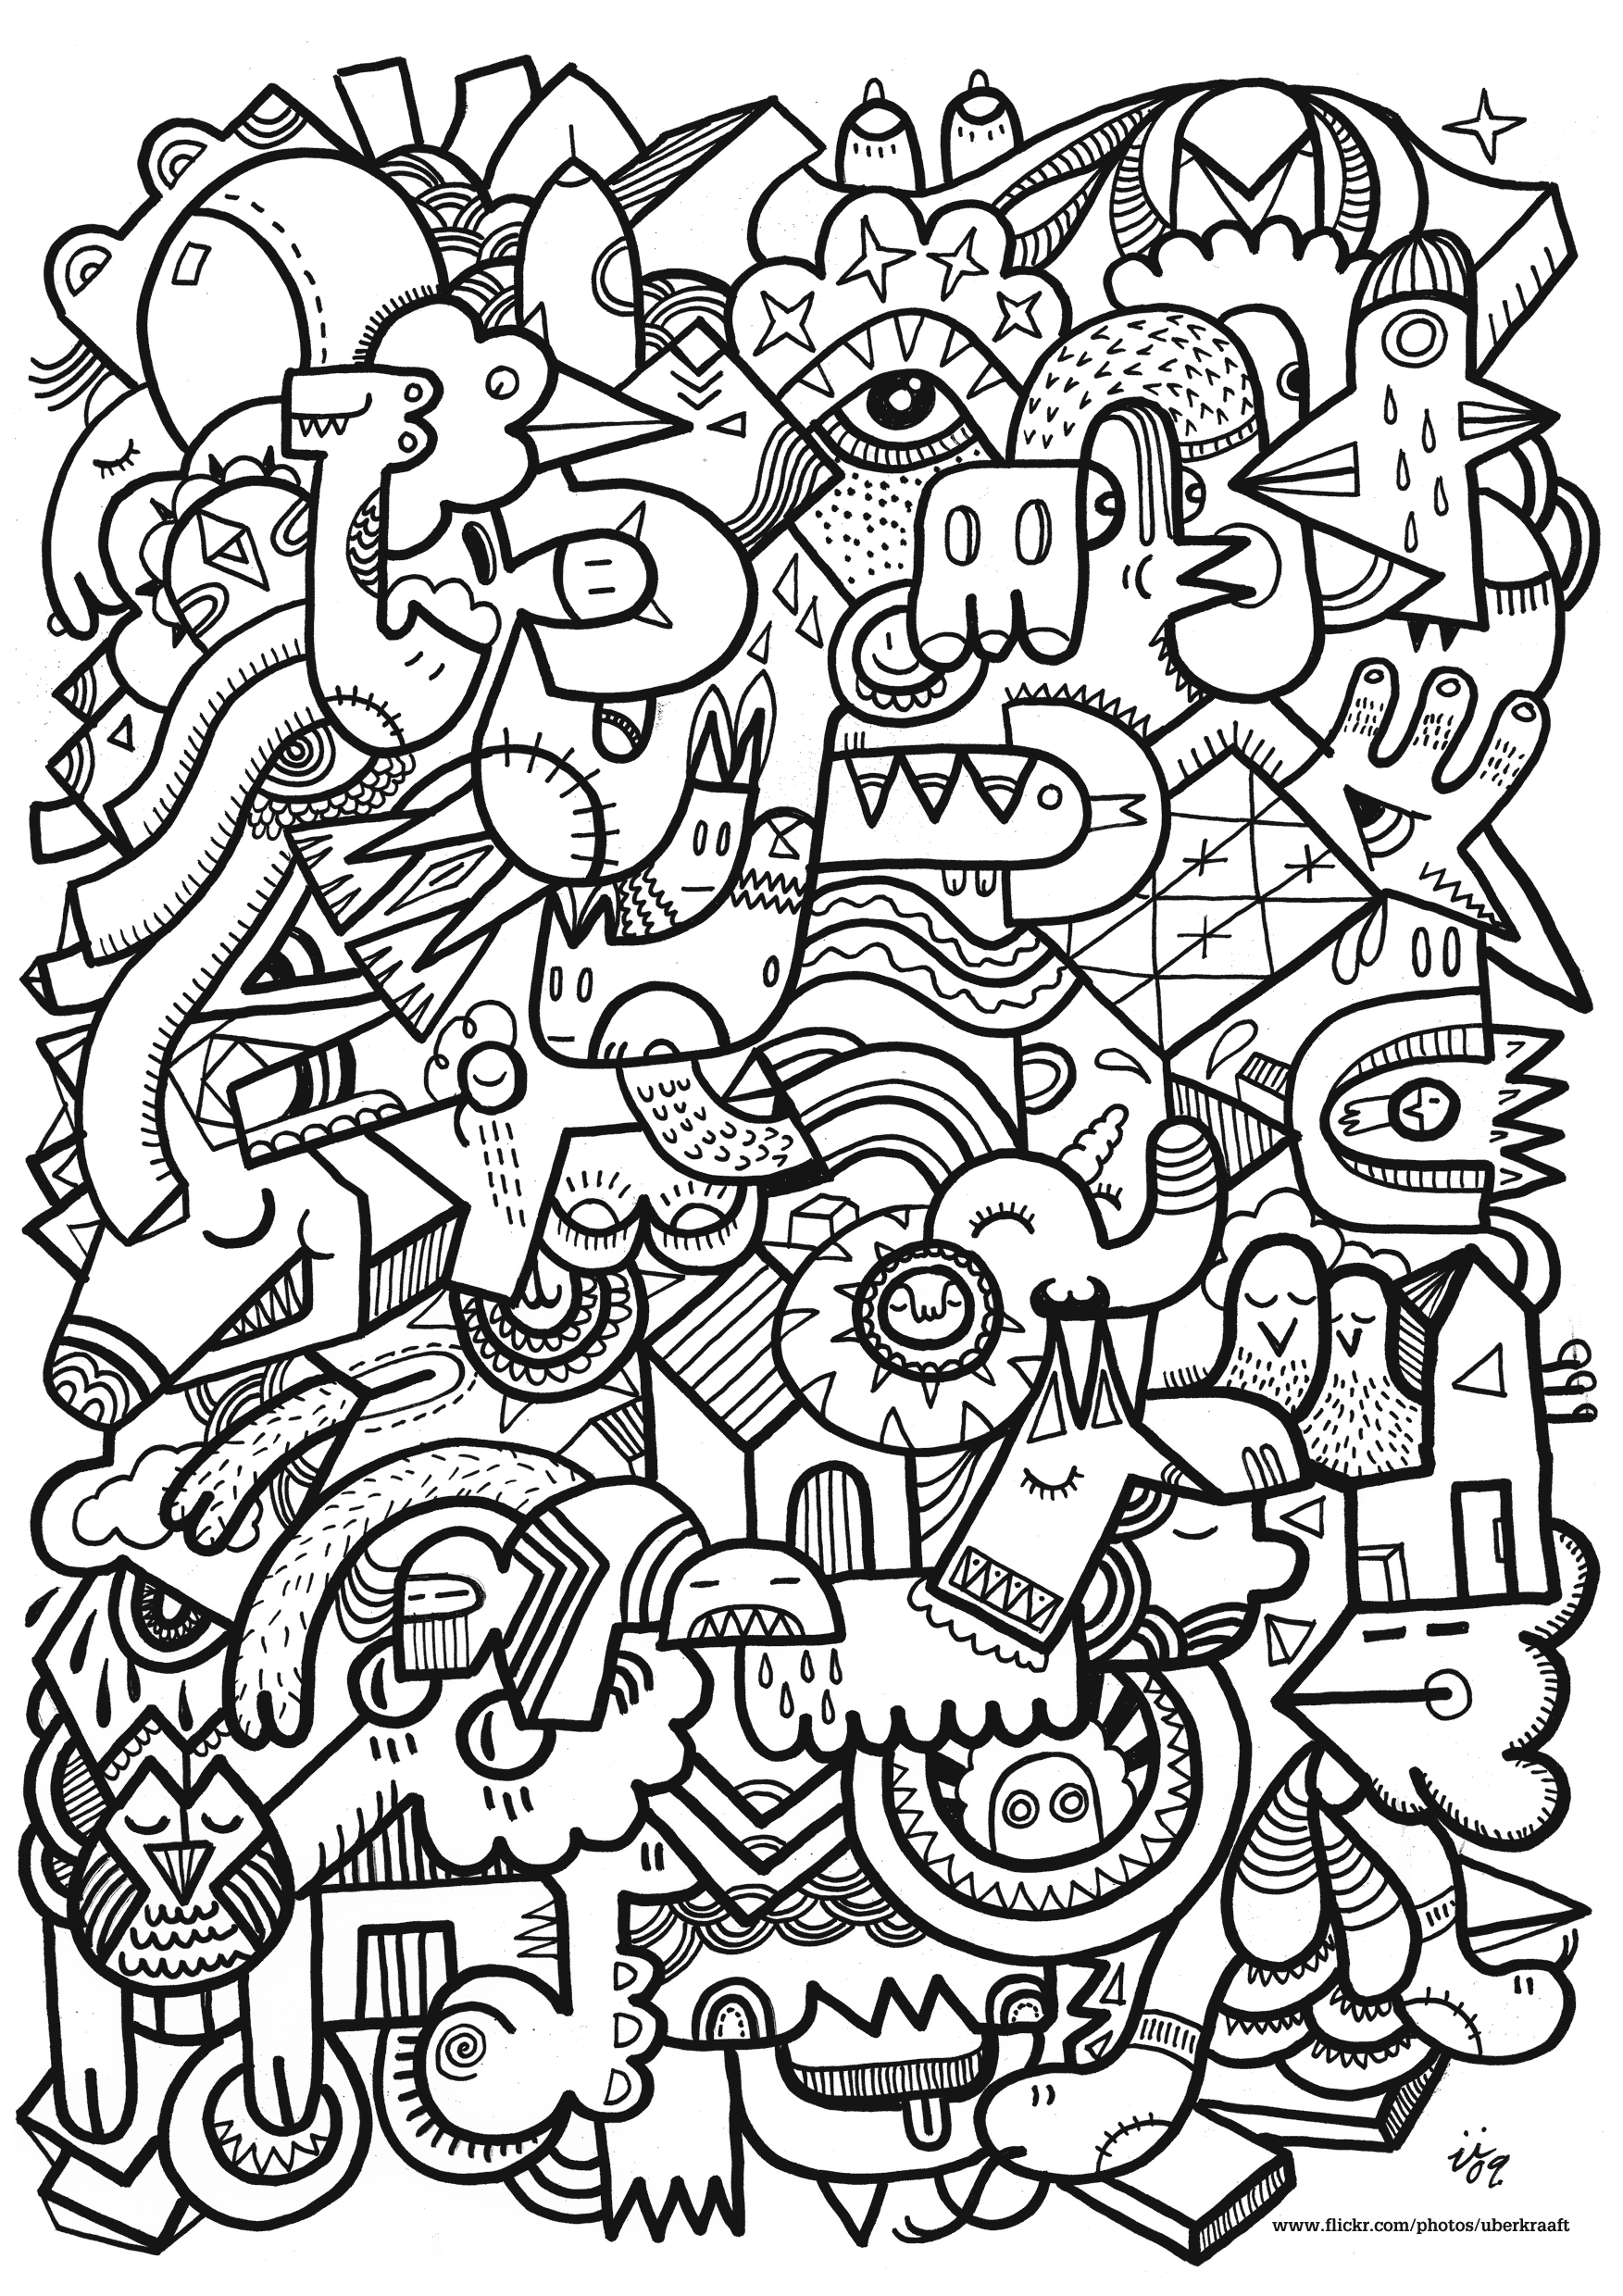 To color for children - Adult - Free printable Coloring pages for kids